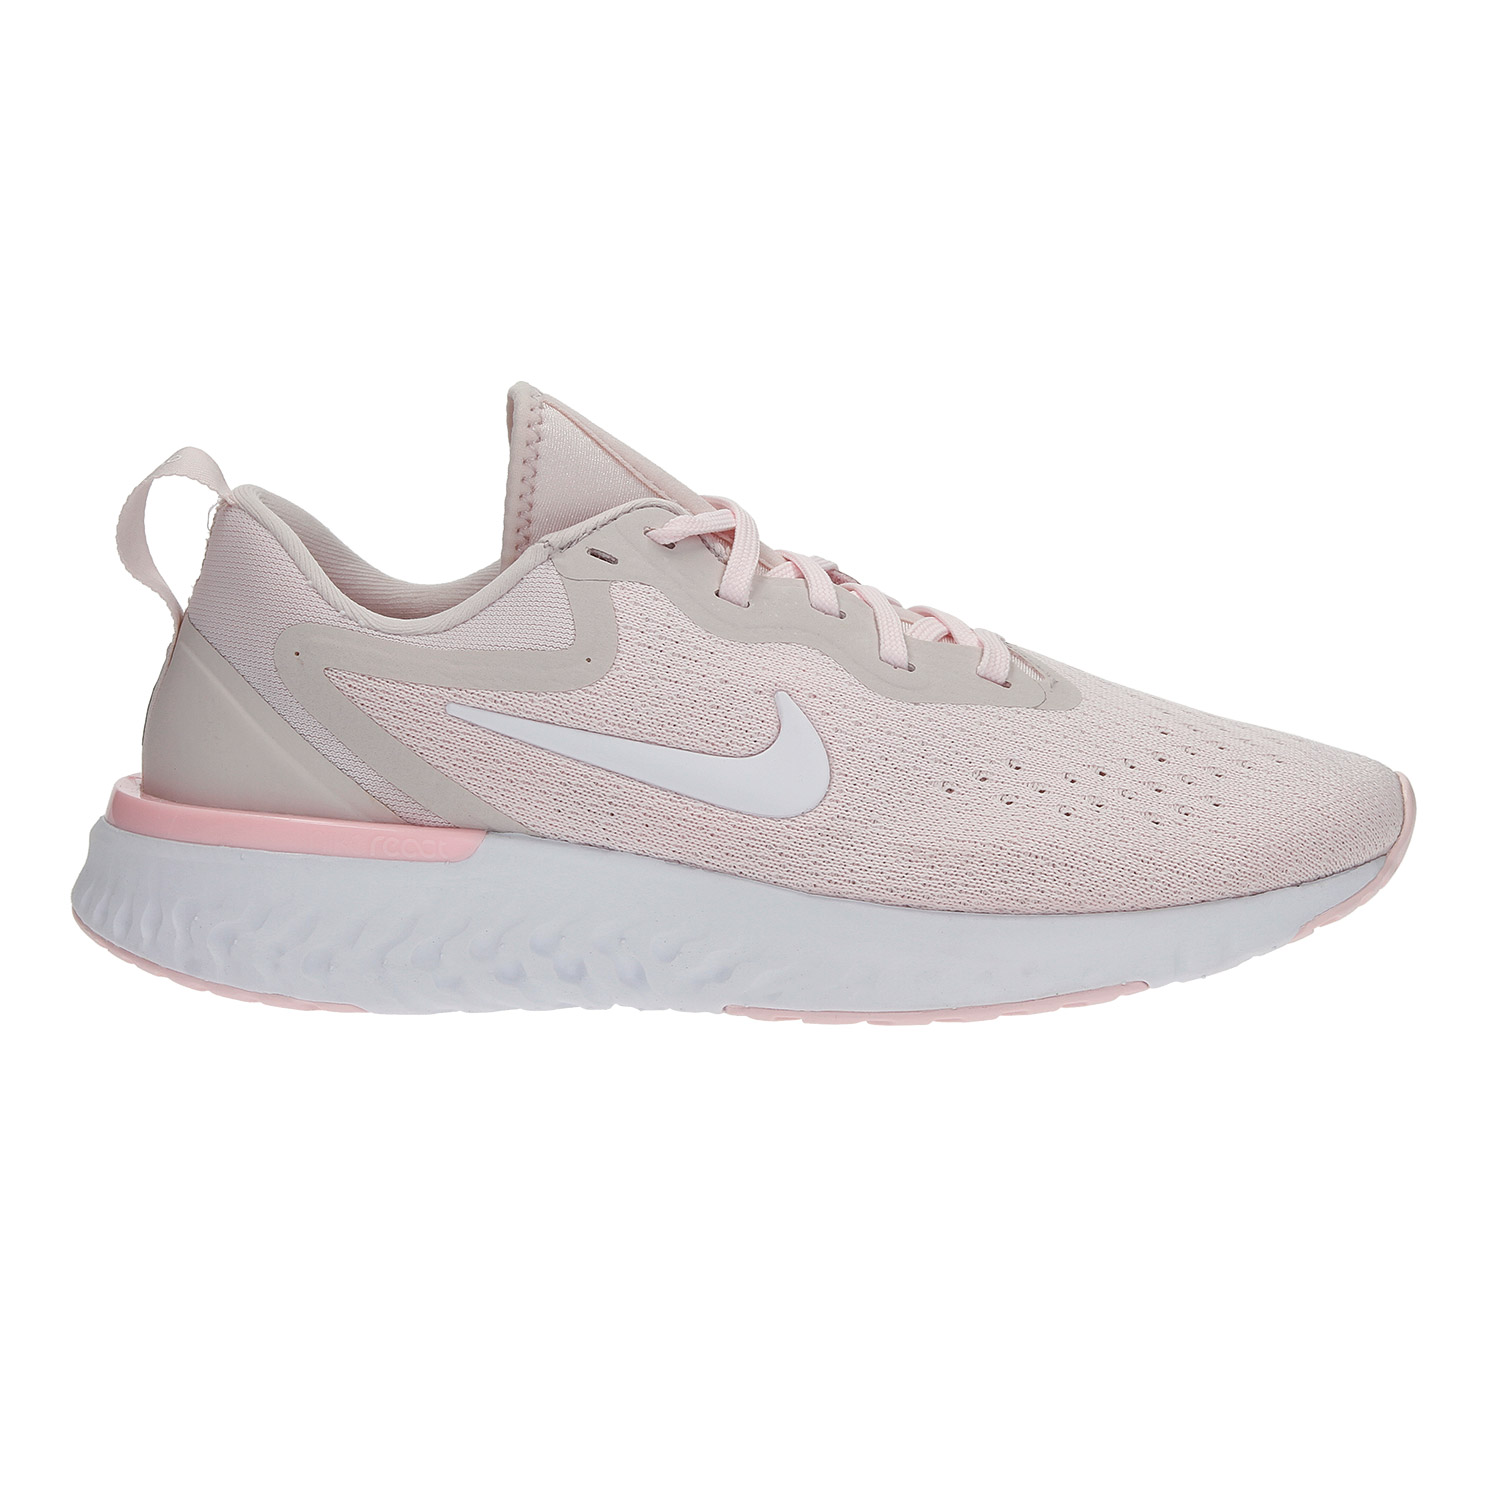 c57f508126c8 Nike Odyssey React Women s Running Shoes